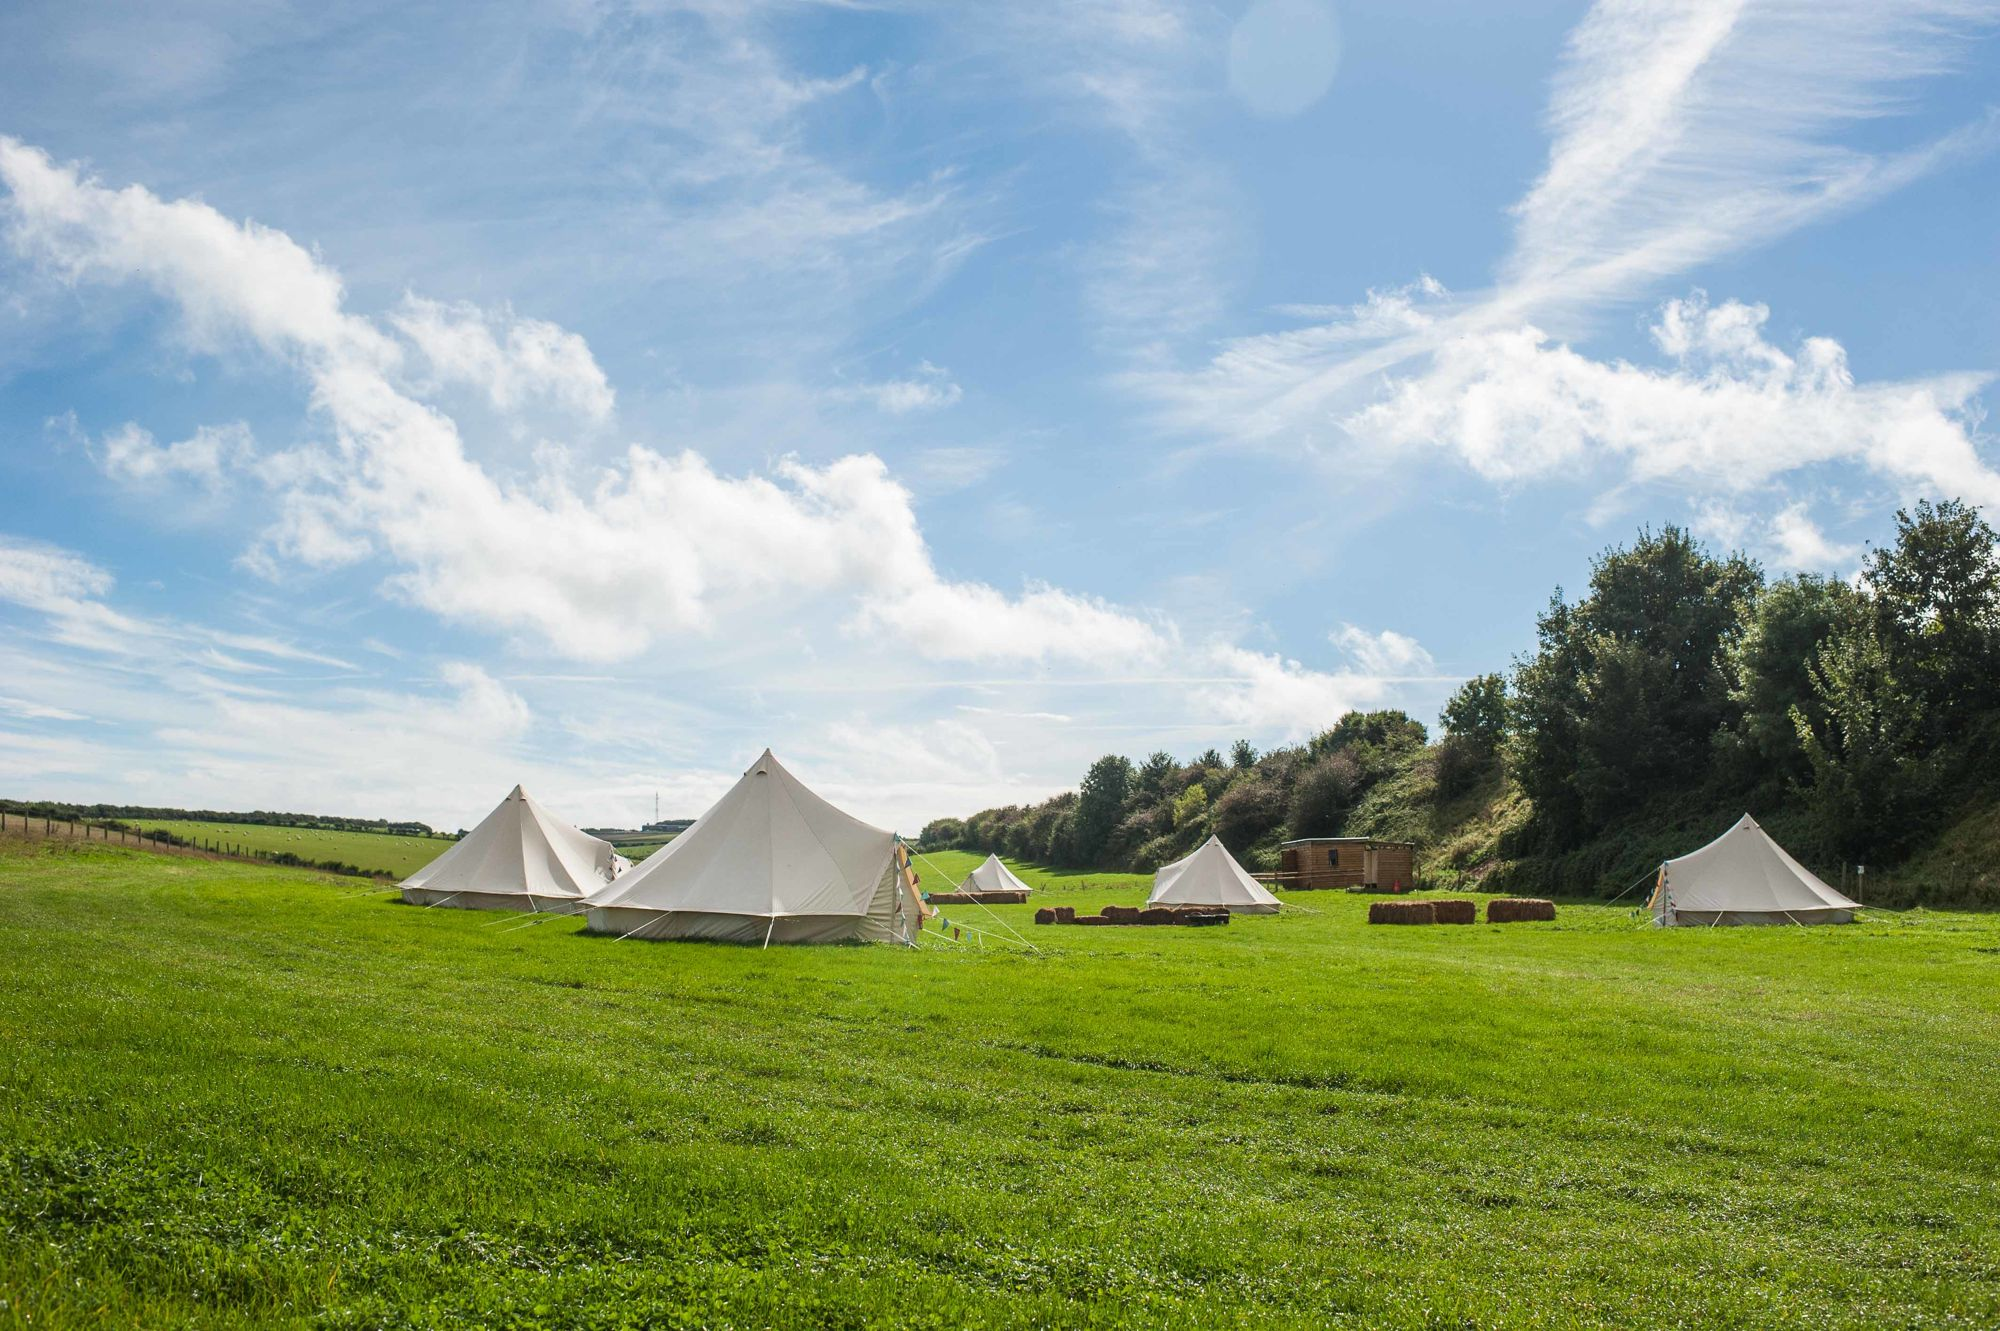 Glamping in Dorset: Relaxed bell tent glamping on the farm just a stone's throw from historic Dorchester.